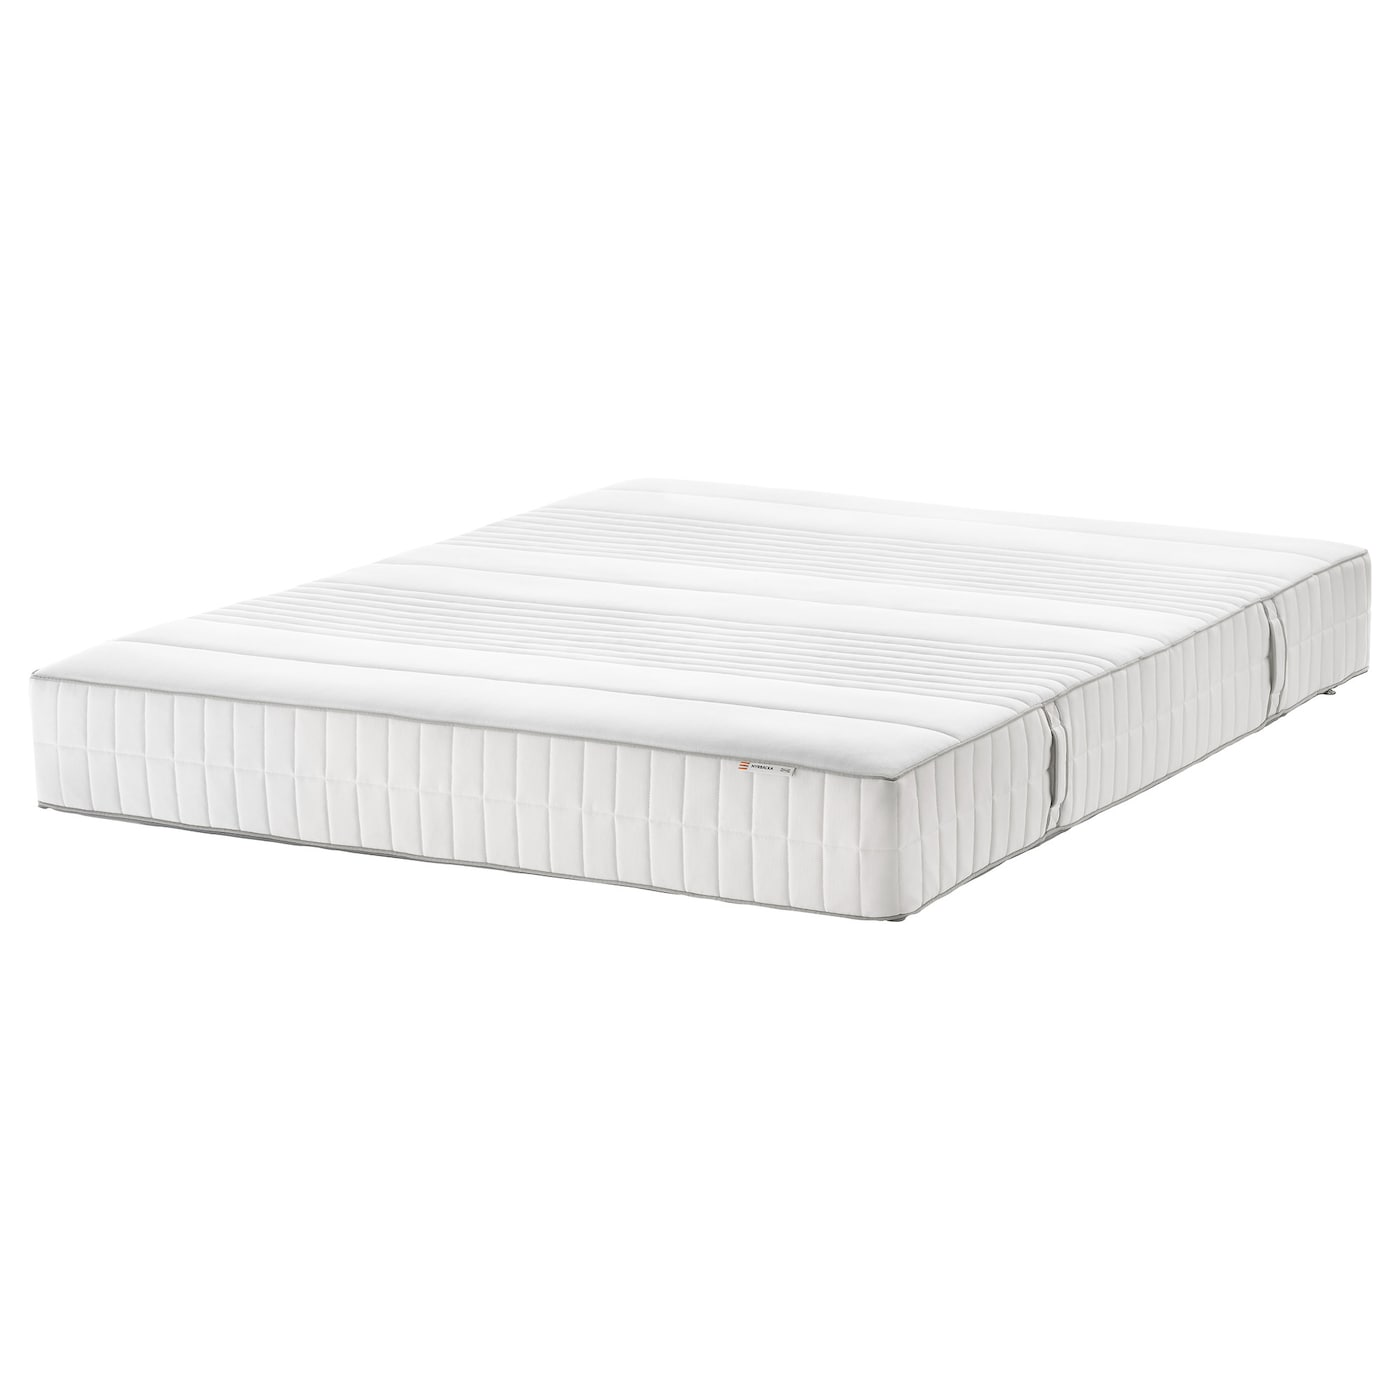 myrbacka matelas mousse m m de forme ferme blanc 160x200 cm ikea. Black Bedroom Furniture Sets. Home Design Ideas